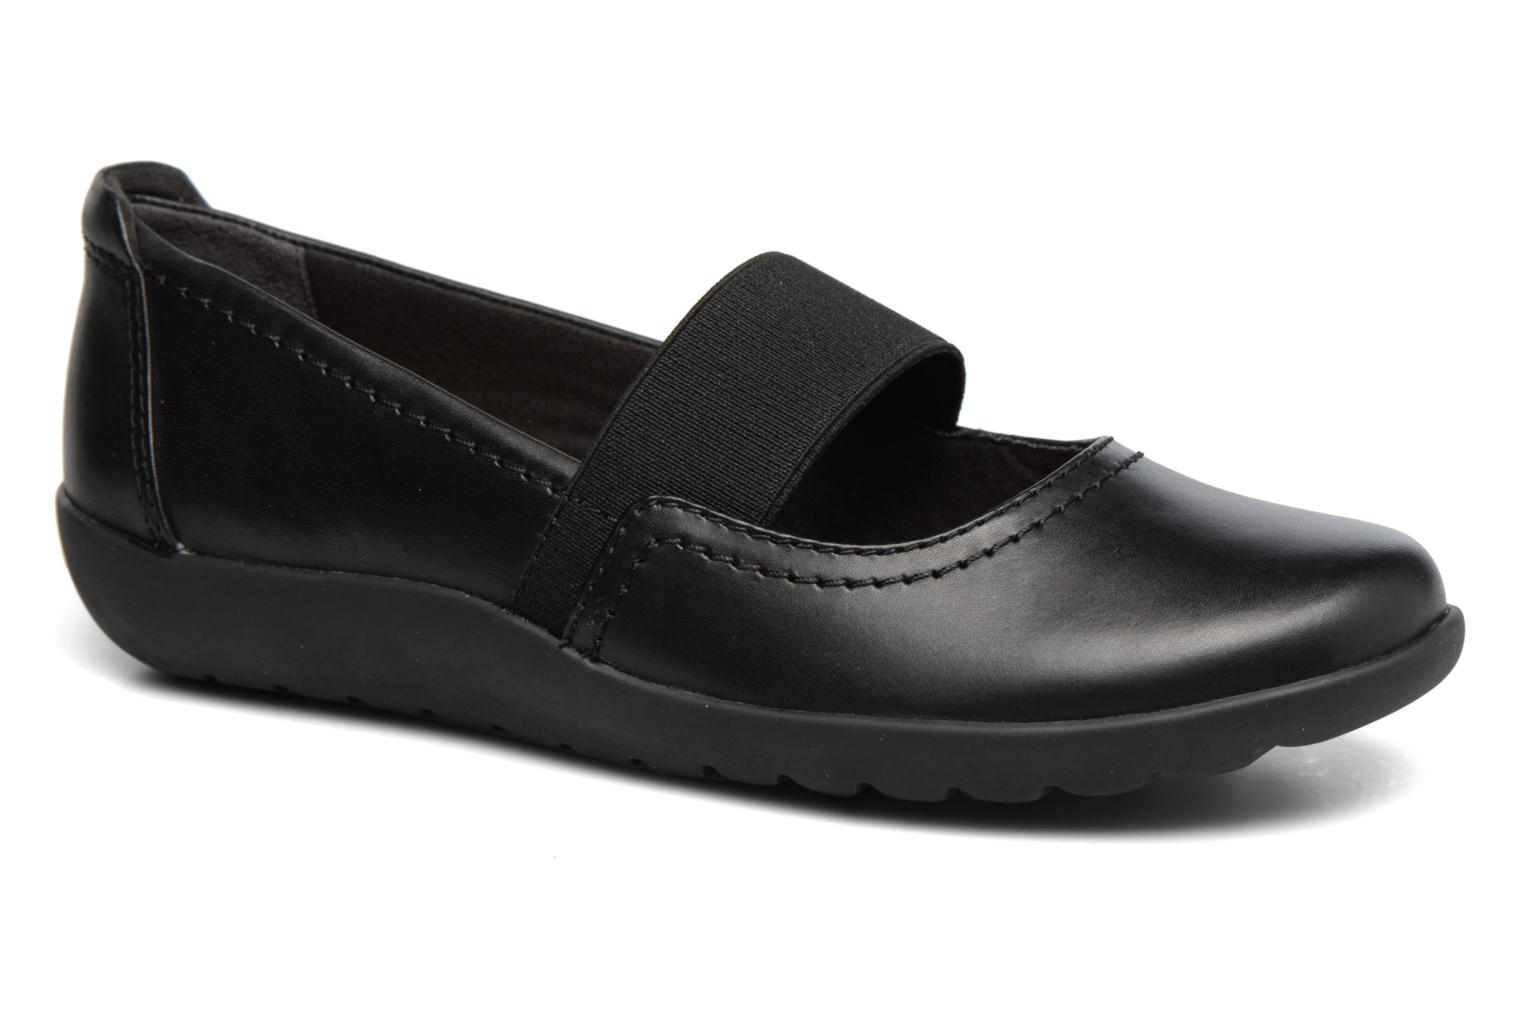 Medora Ally Black leather